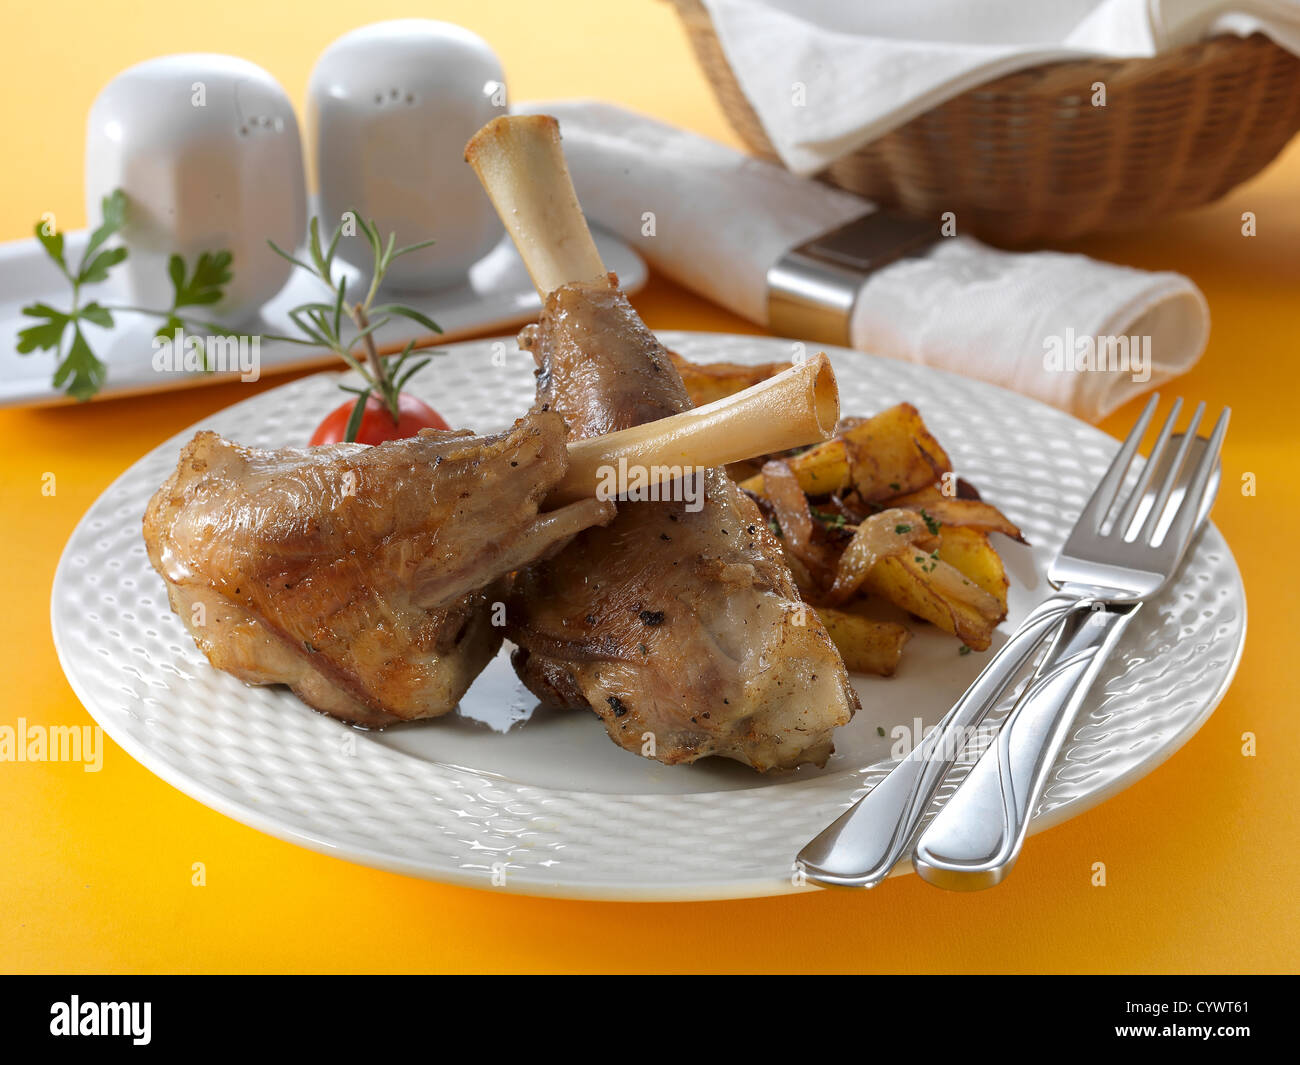 lamb shank Pékné on white plate with chrome fork, knife - Stock Image